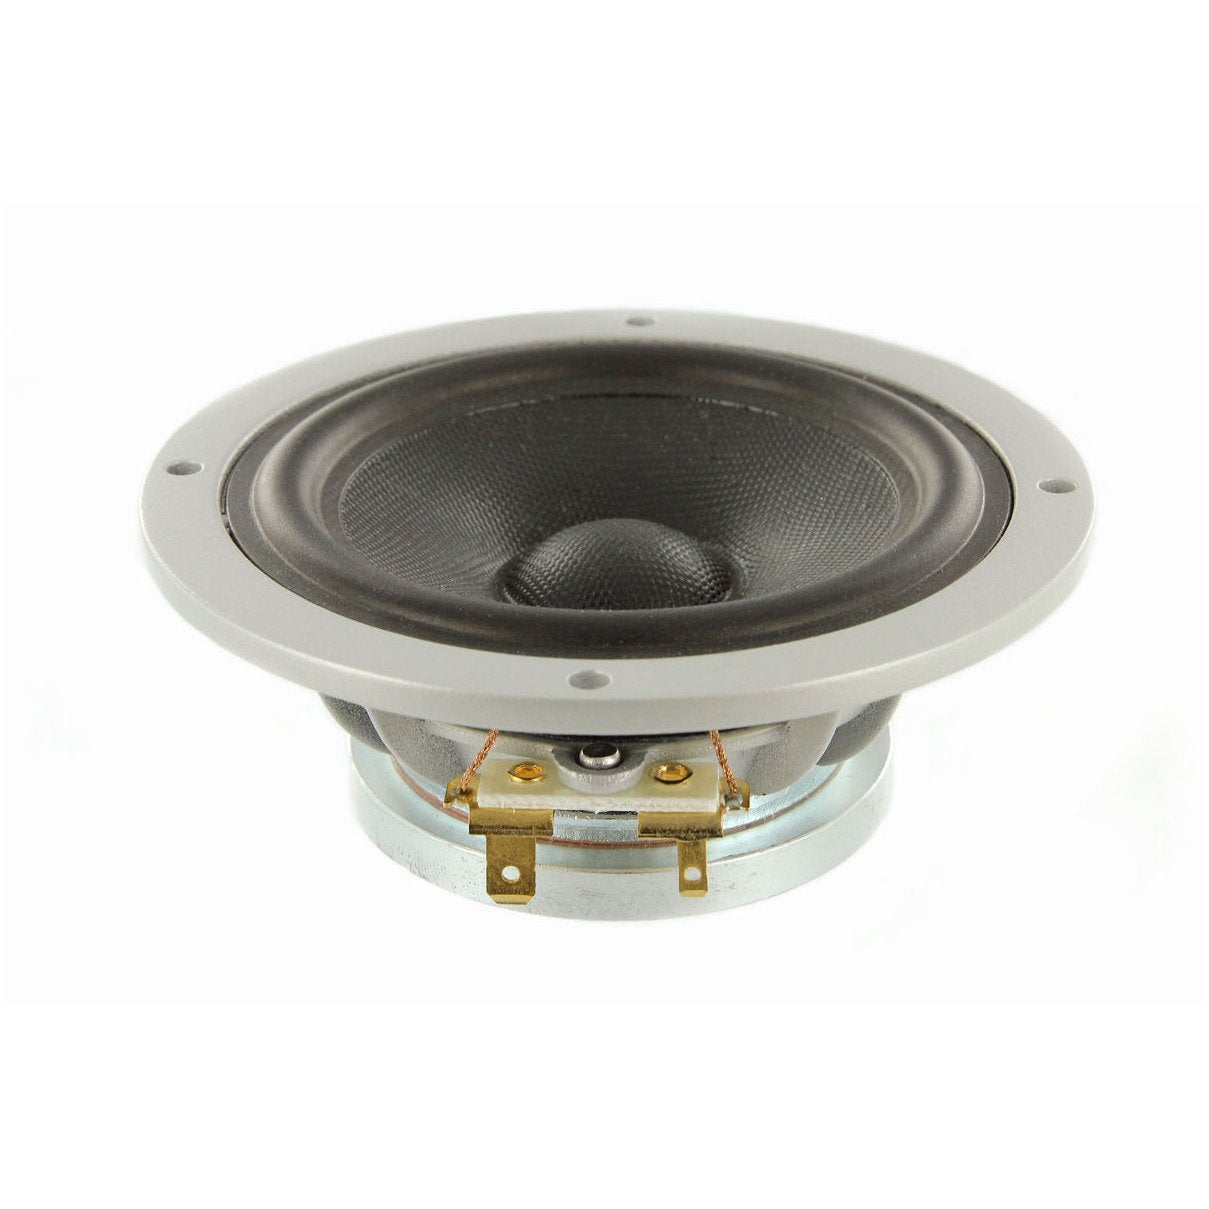 Scanspeak 10M/4614G06 Automotive Midrange - Silver Series - Willys-Hifi Ltd